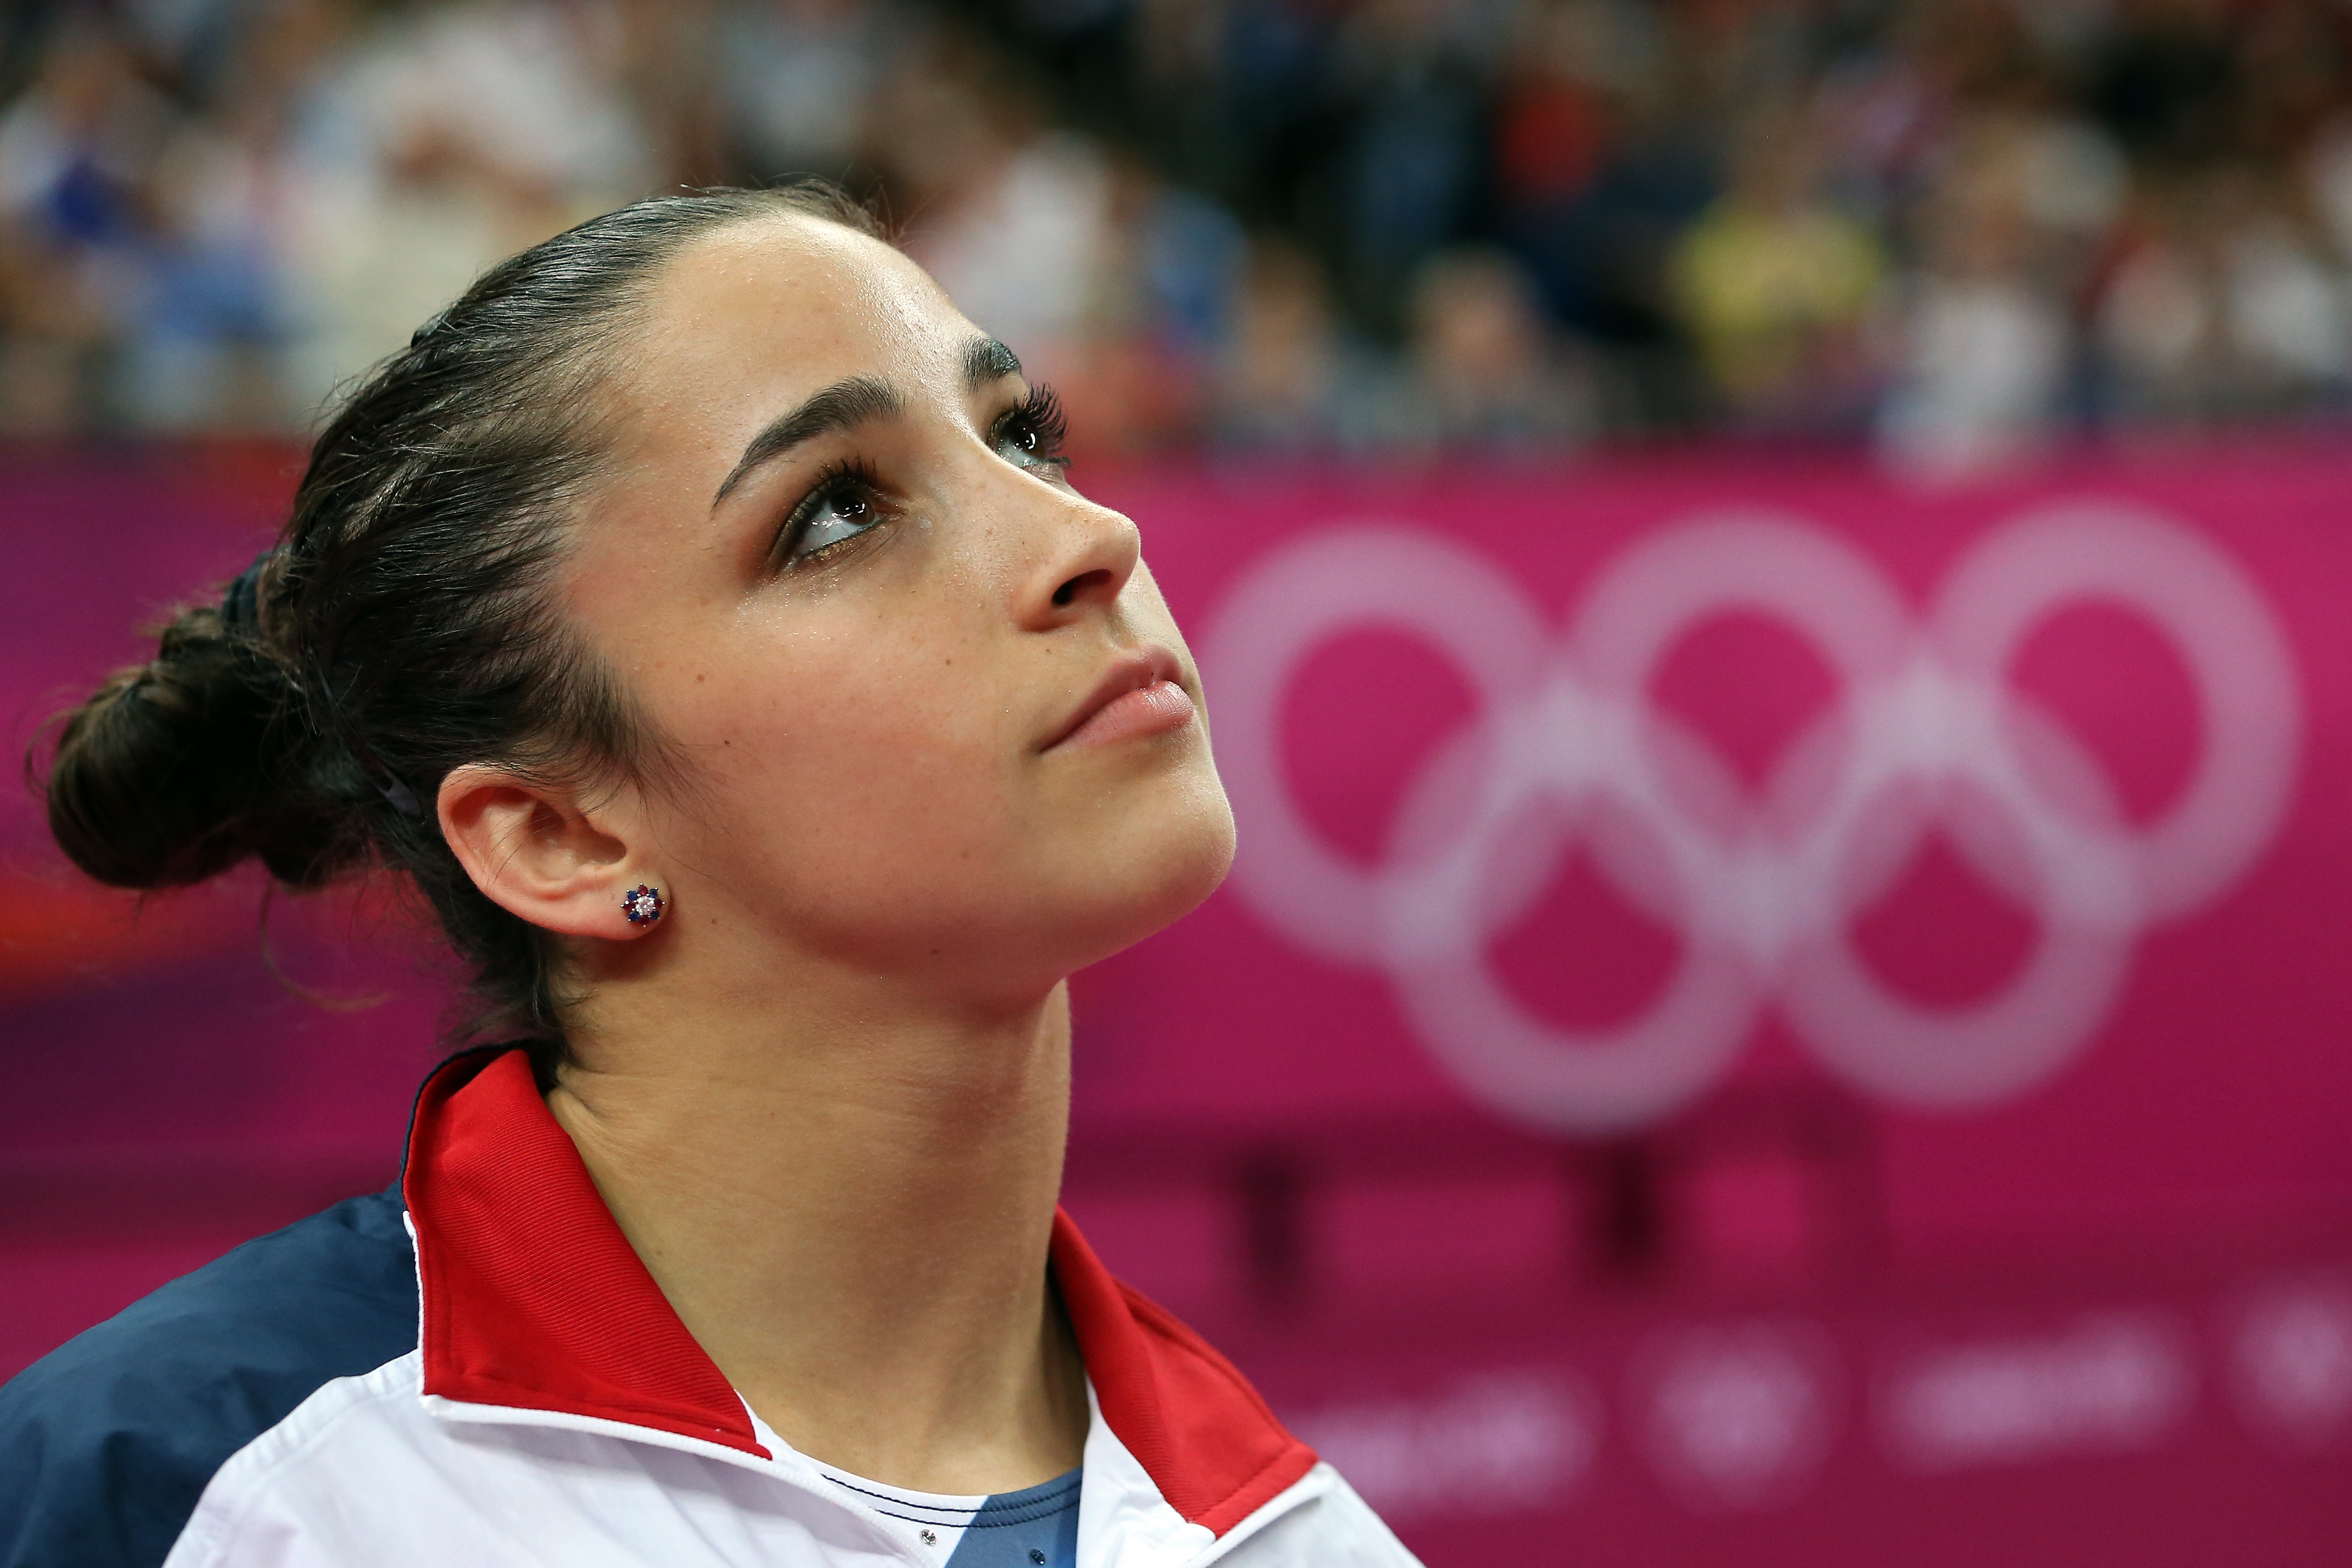 The Olympic Committee is giving the U.S. Gymnastics board six days to resign